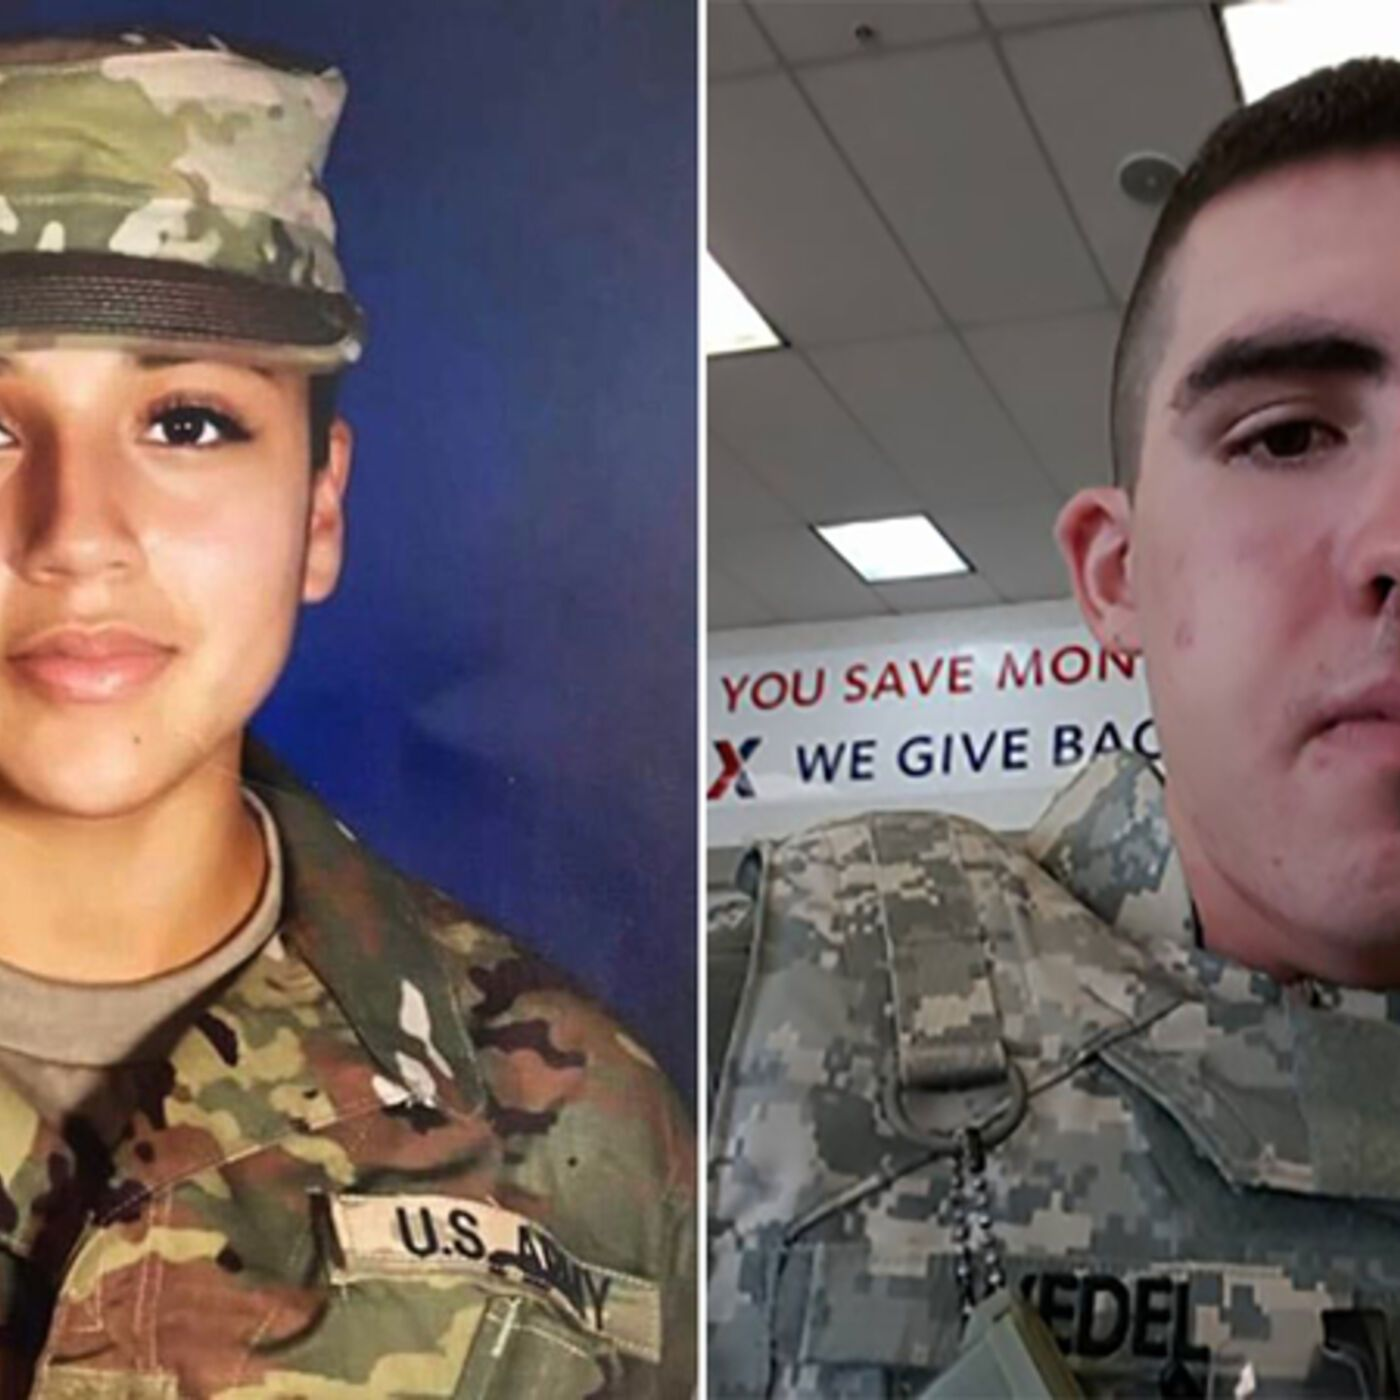 Our Missing Soldiers: Gregory Wedel-Morales & Vanessa Guillen